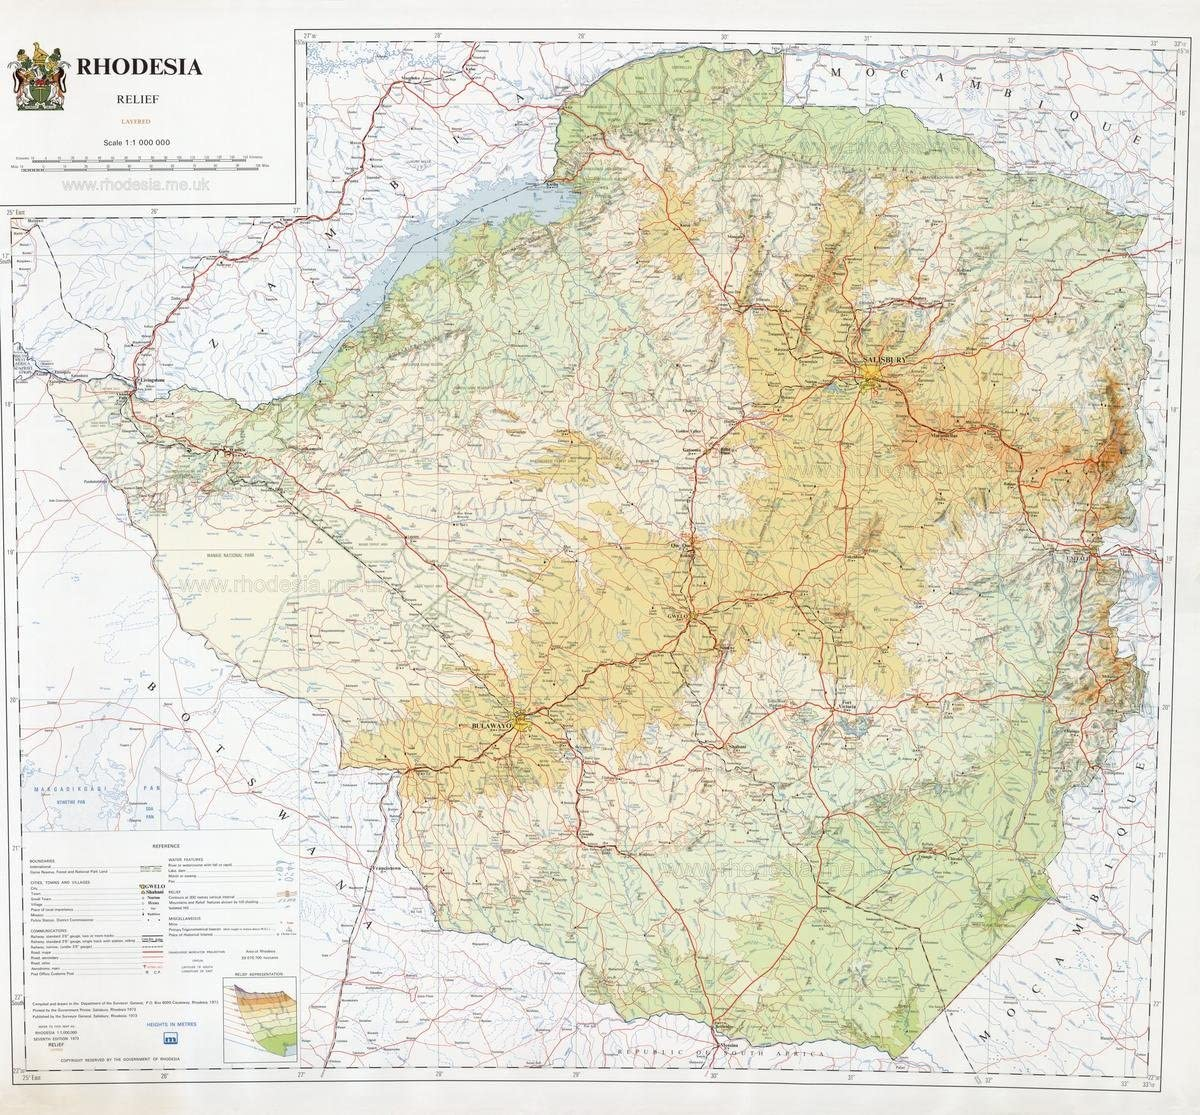 Gifts Delight Laminated 25x24 Poster: Physical Map - Rhodesian Maps Archive of Rhodesia